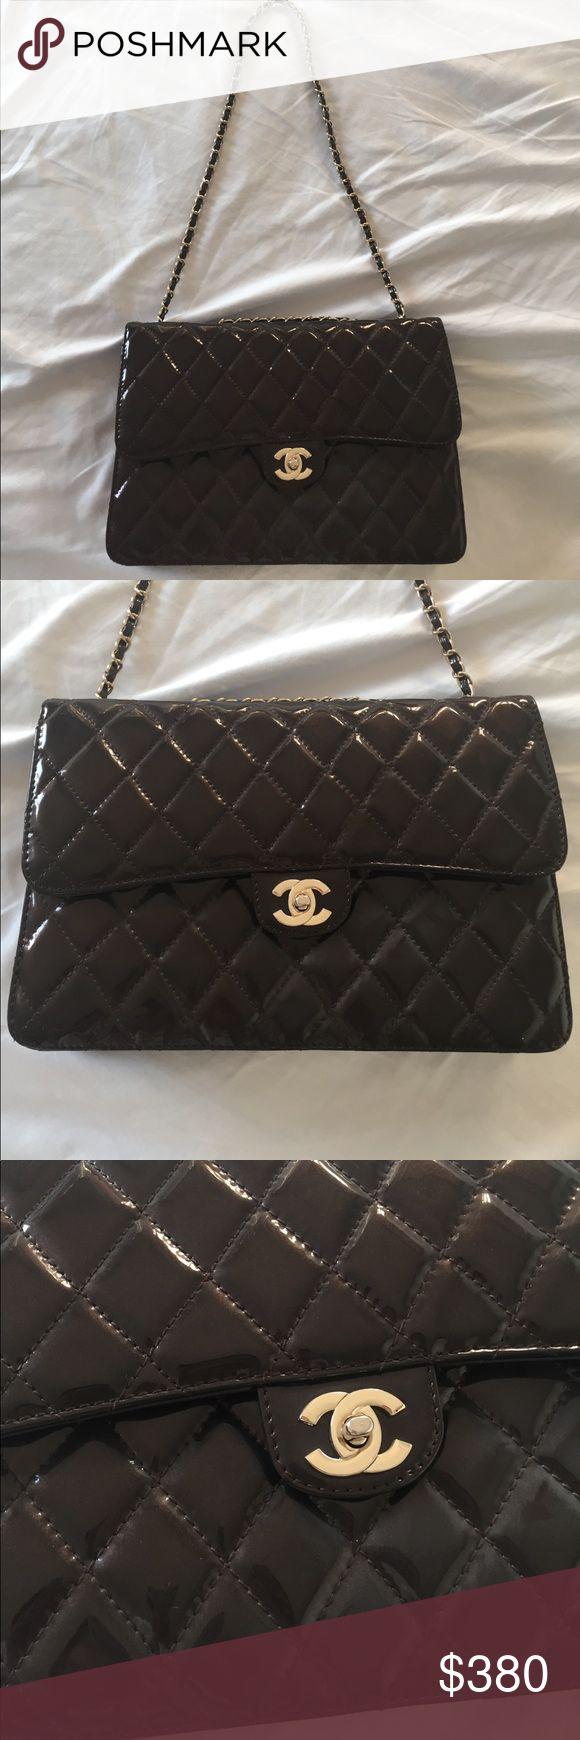 Vintage Chanel bag Quilted brown patent leather Chanel purse in gently used vintage condition. I purchased in vintage store in upper east nyc. It has authentic sticker but not sure it is authentic. I purchased about 10years agao. It is used but only light wear inside. CHANEL Bags Shoulder Bags